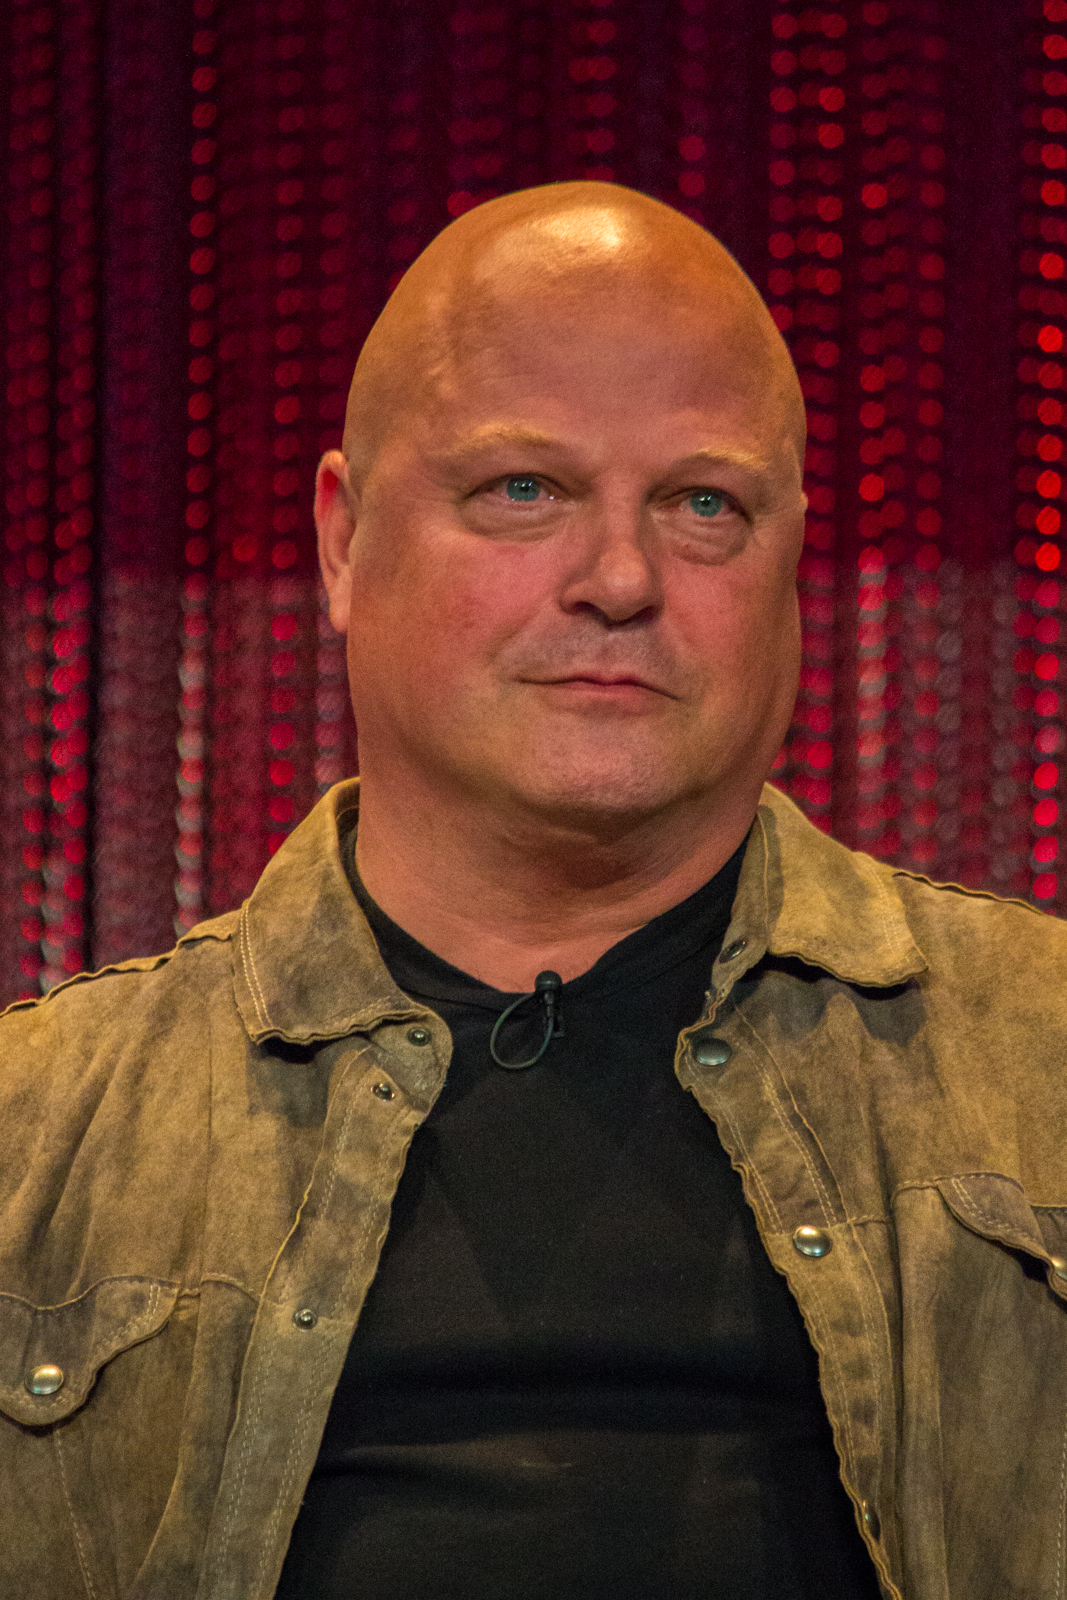 michael chiklismichael chiklis instagram, michael chiklis imdb, michael chiklis the shield, michael chiklis interview, michael chiklis band, michael chiklis breaking bad, michael chiklis film, michael chiklis family guy, michael chiklis, michael chiklis sons of anarchy, michael chiklis net worth, michael chiklis american horror story, michael chiklis gotham, michael chiklis soa, michael chiklis twitter, michael chiklis ahs, michael chiklis movies, michael chiklis vs dean norris, michael chiklis seinfeld, michael chiklis wife